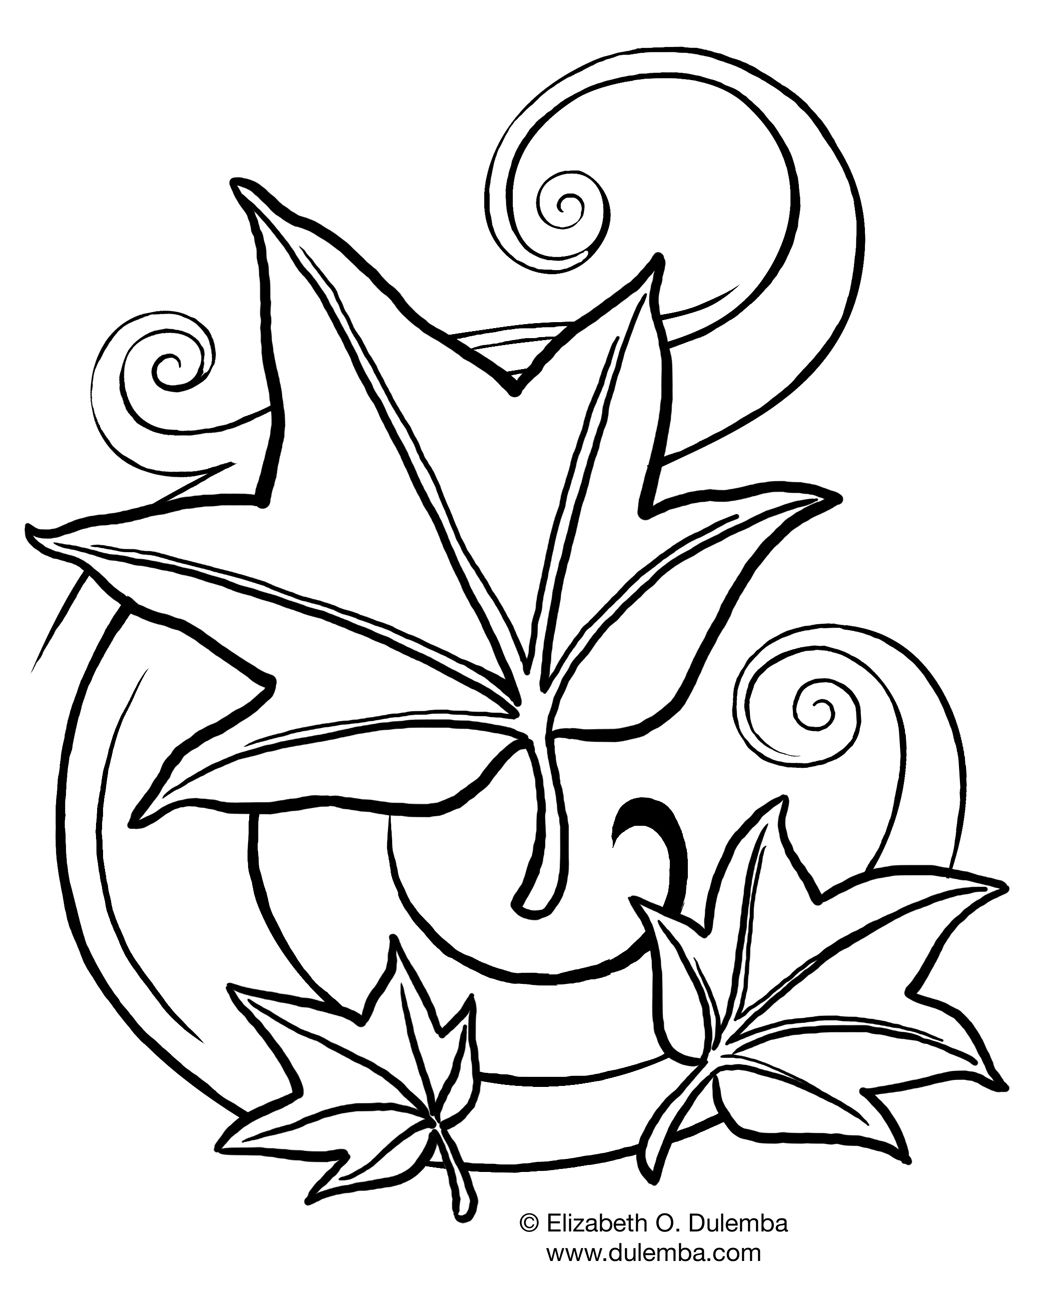 Fall+Coloring+Pages | Free Fall Coloring Pages for Kids | BLK/WHT ...